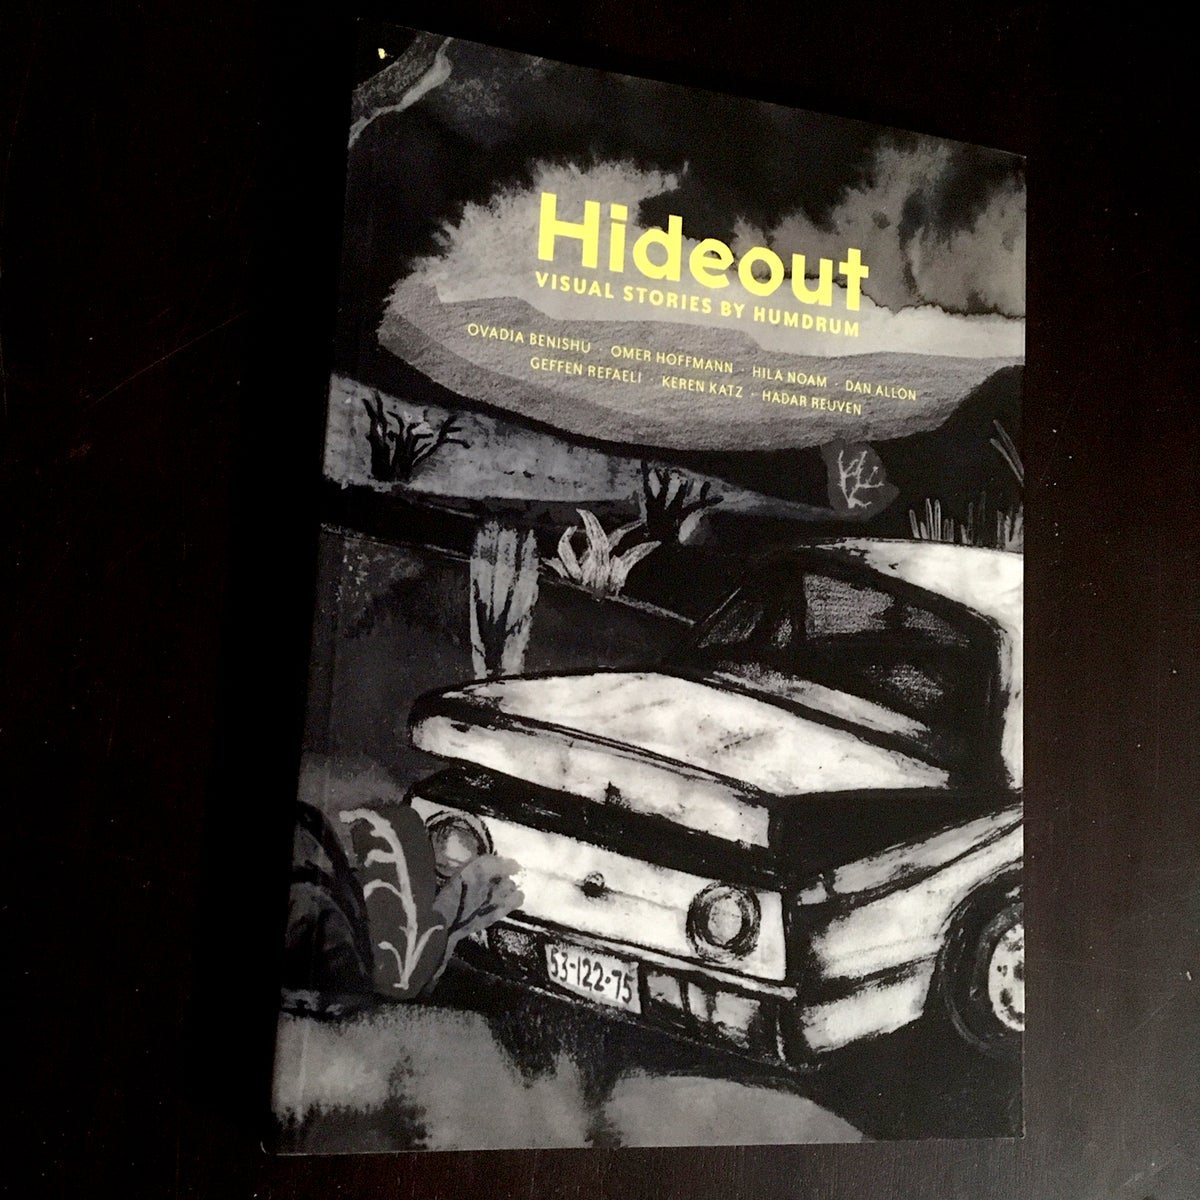 Image of Hideout